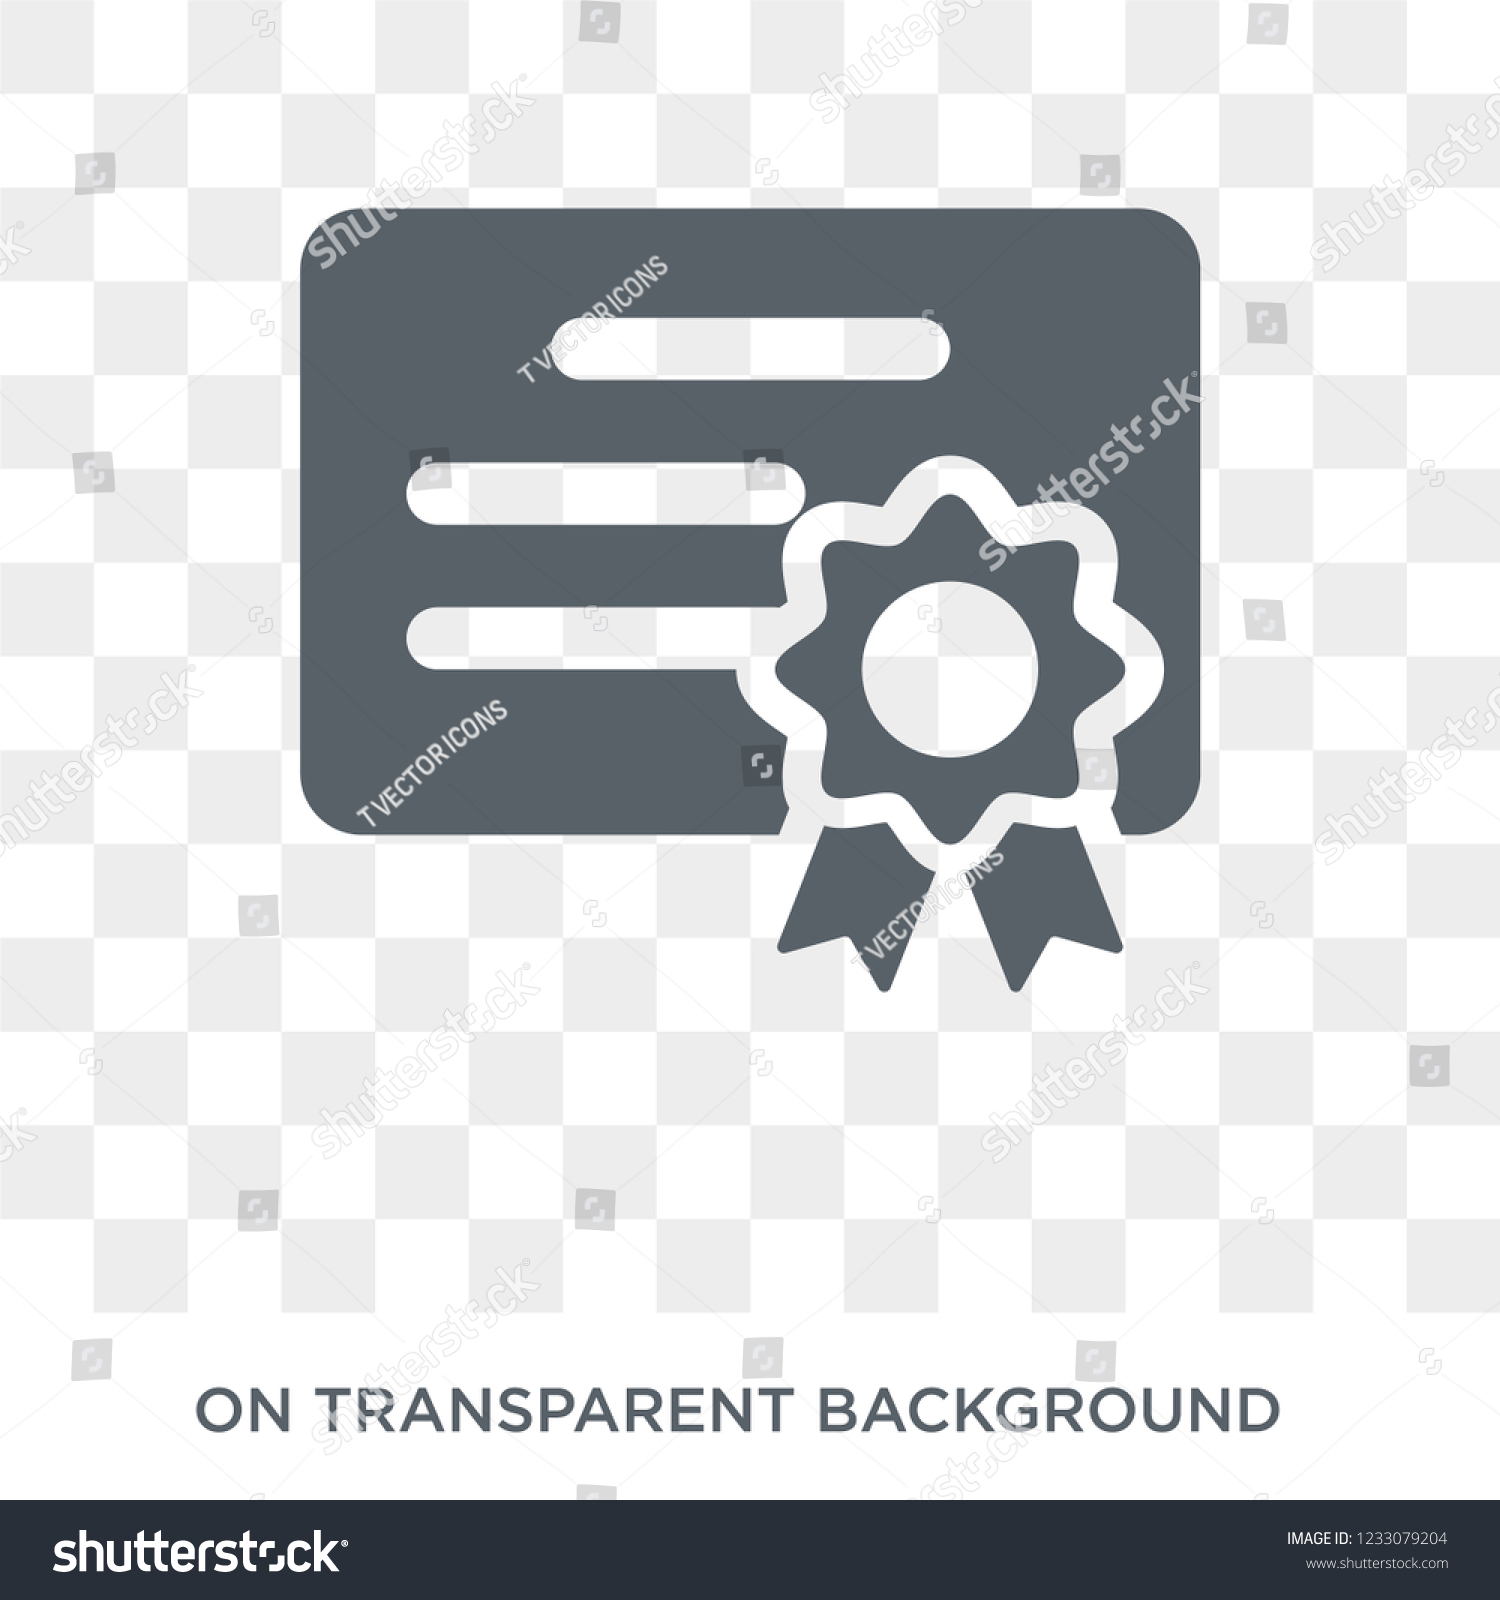 Certification Icon Certification Design Concept Human Stock Vector